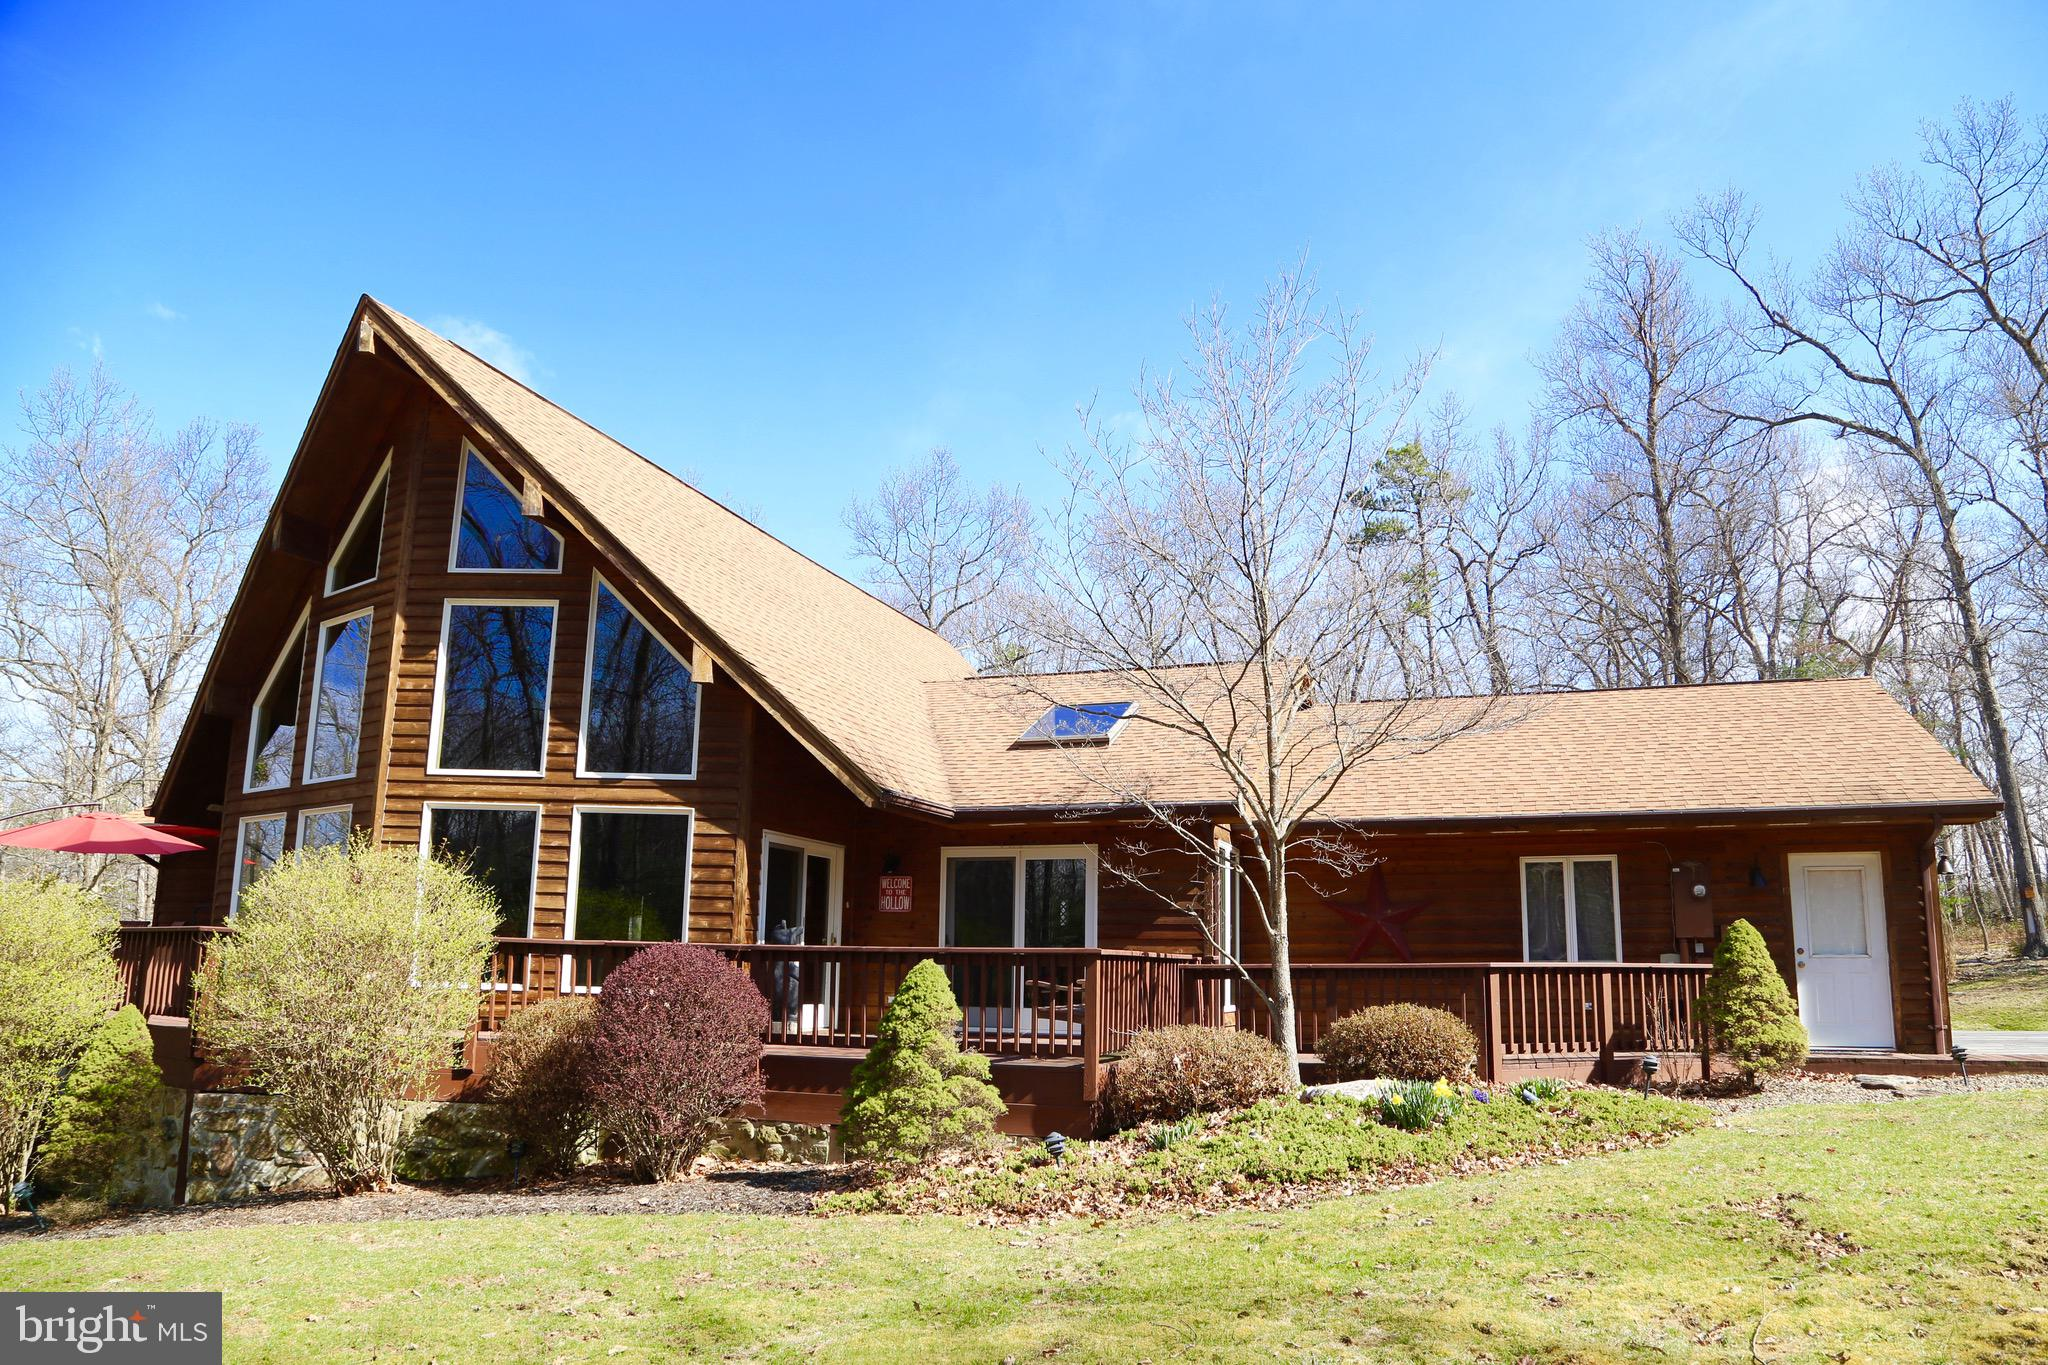 1067 EVERGREEN FARMS DRIVE, WARDENSVILLE, WV 26851